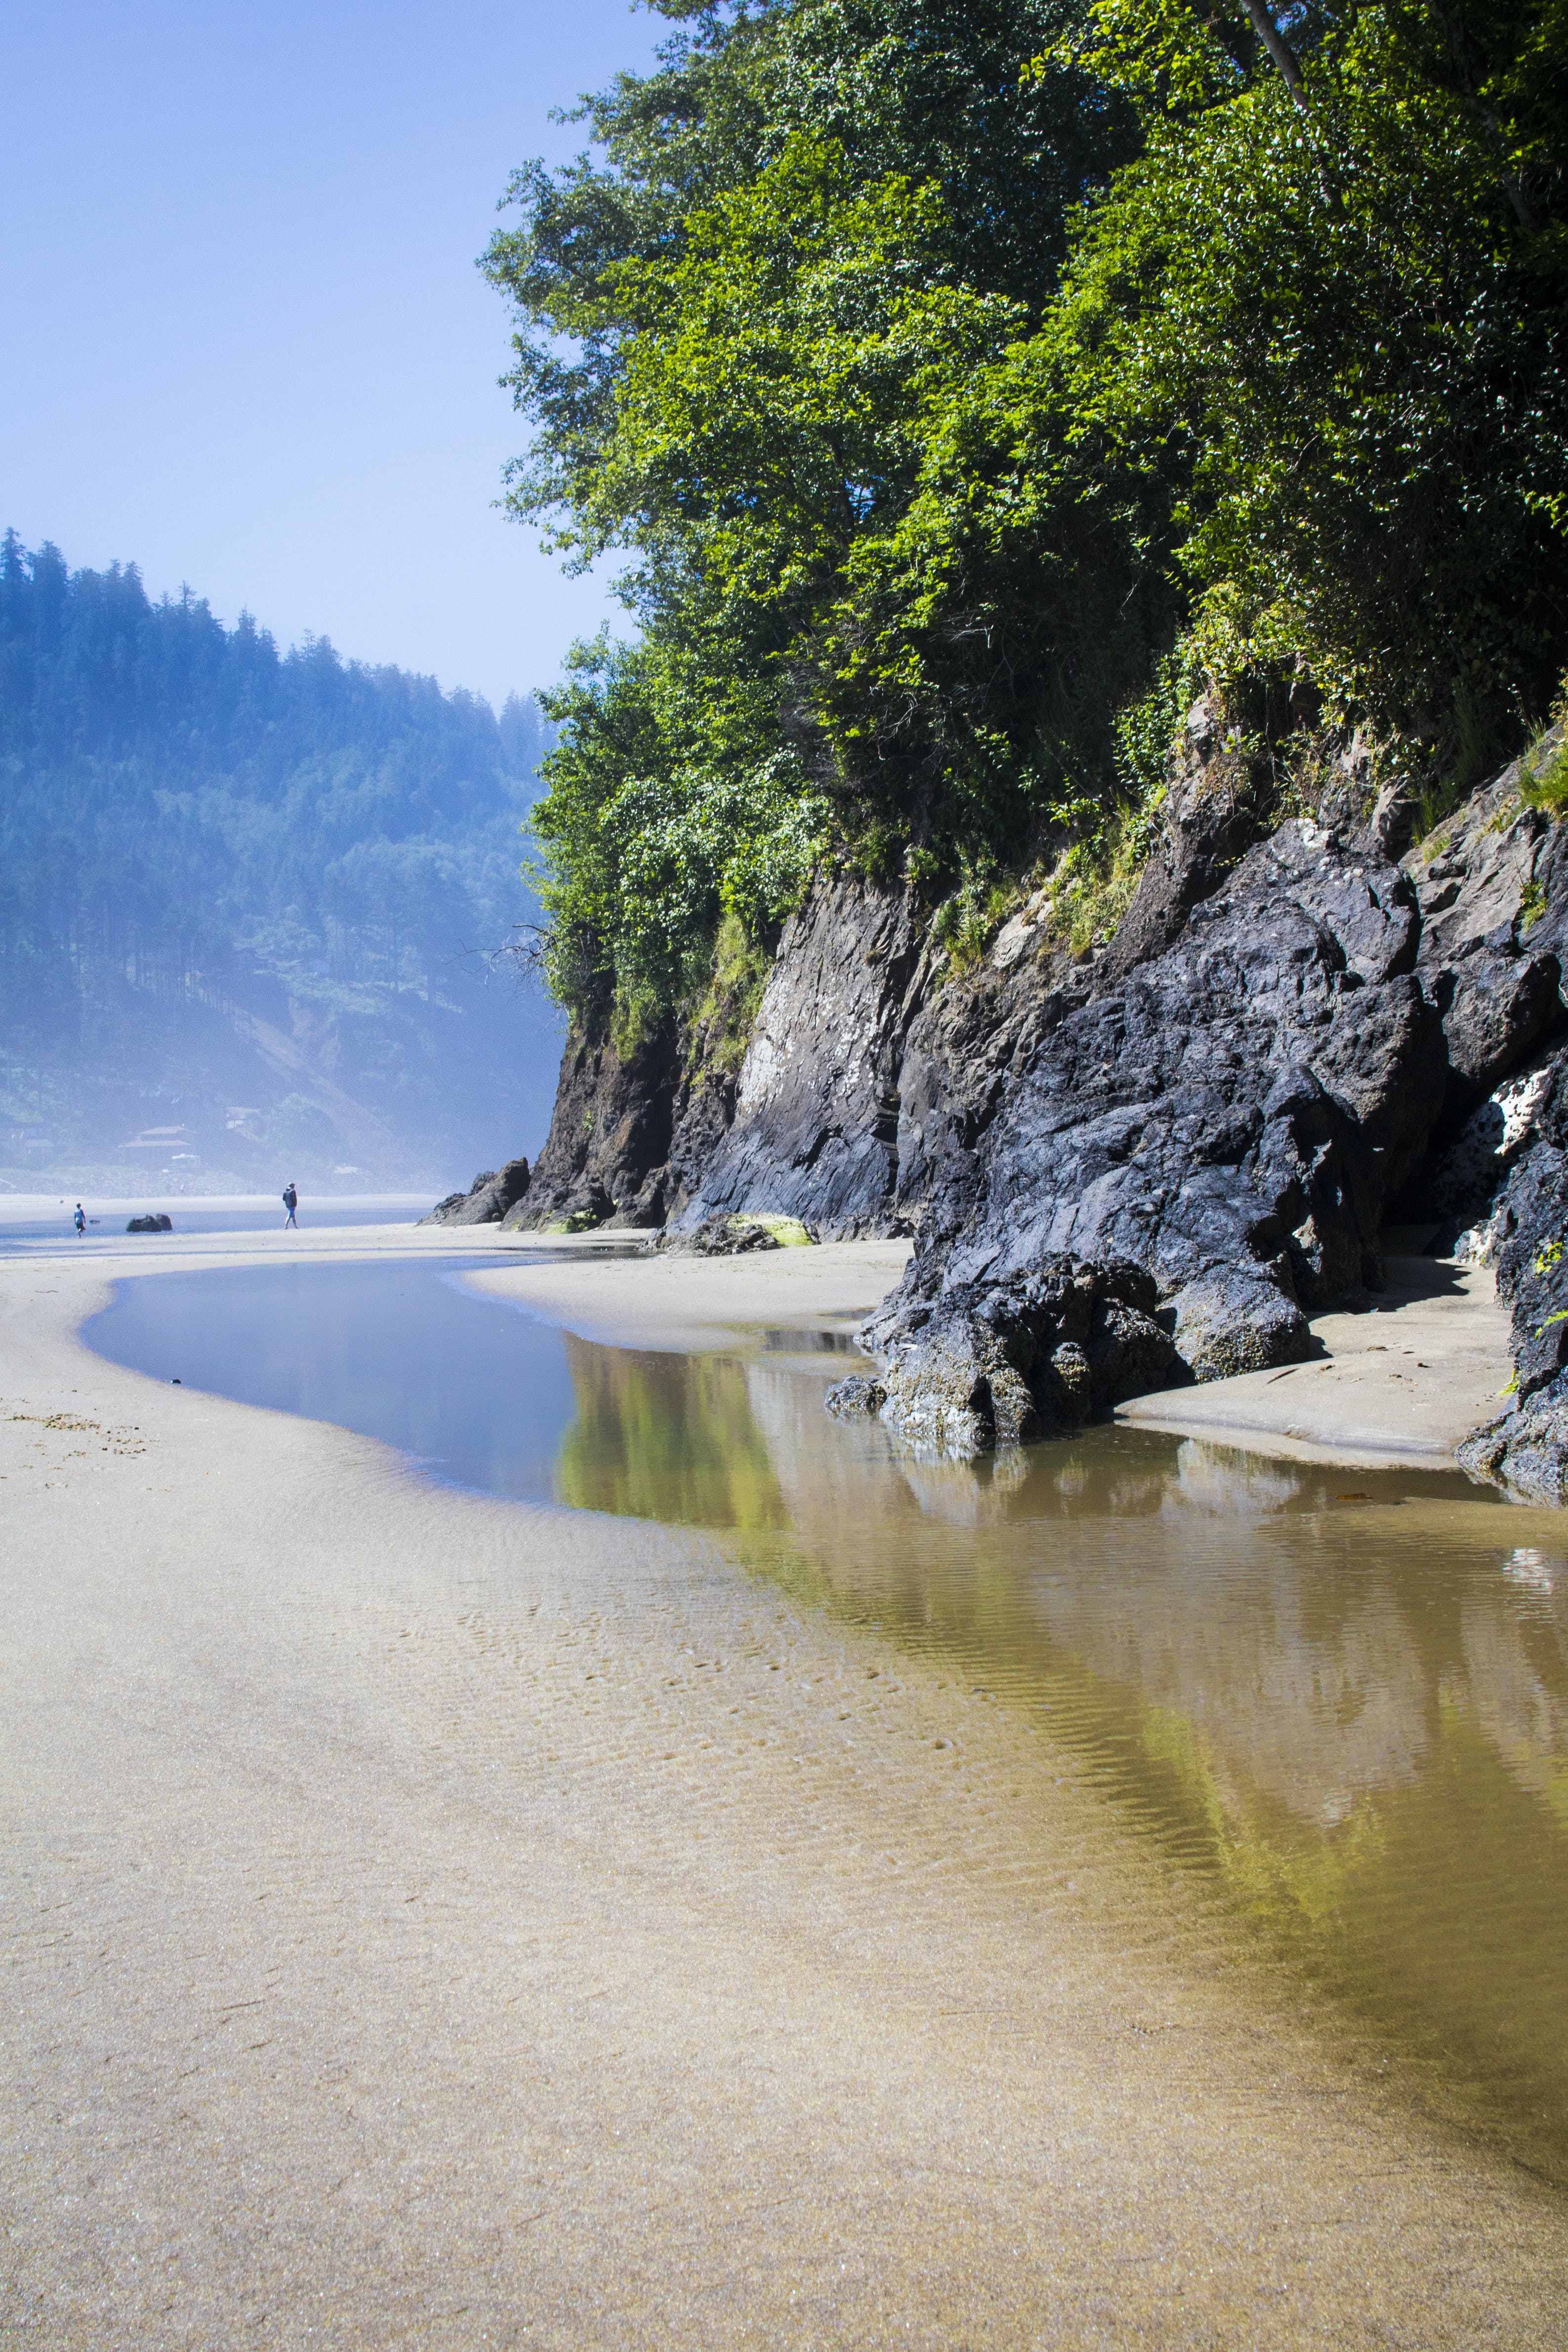 Free stock photo of beach, beach island, cliffs, low tide